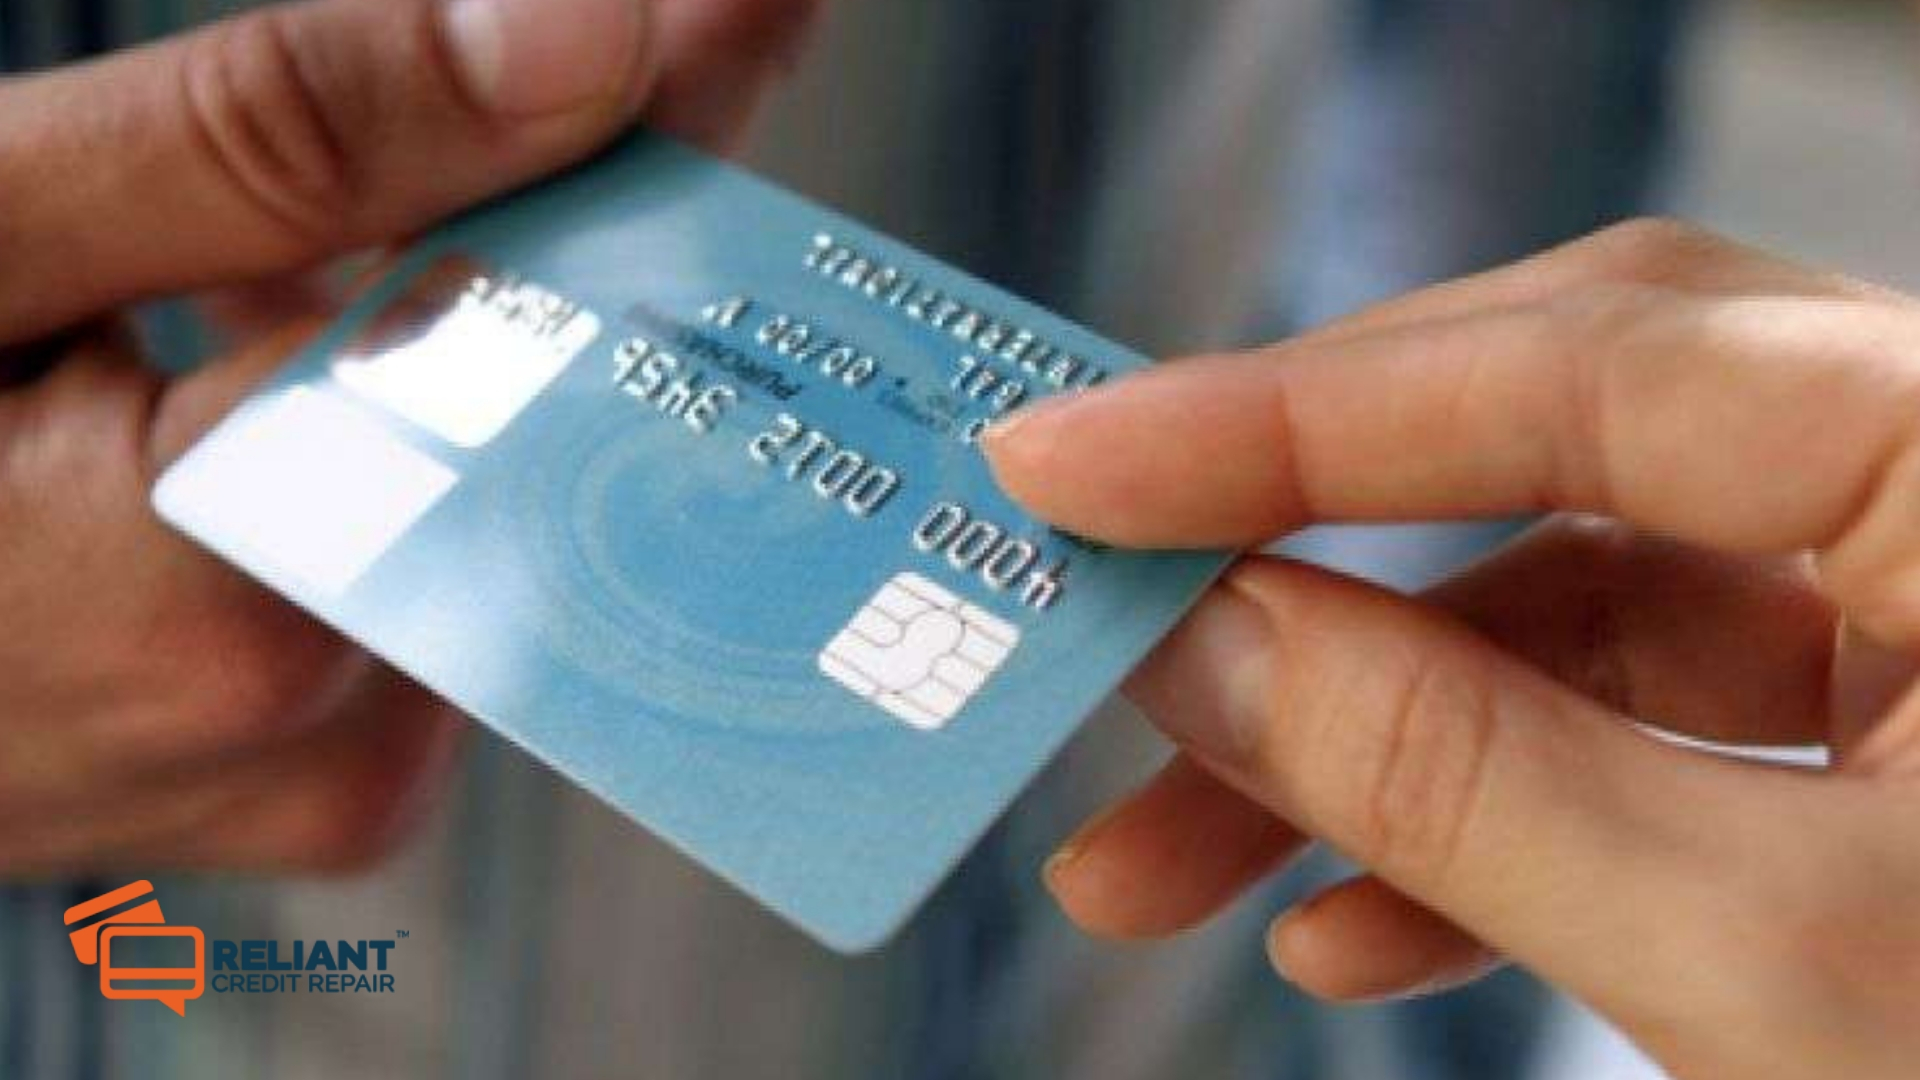 Settle Smart: How To Do Credit Card Payment